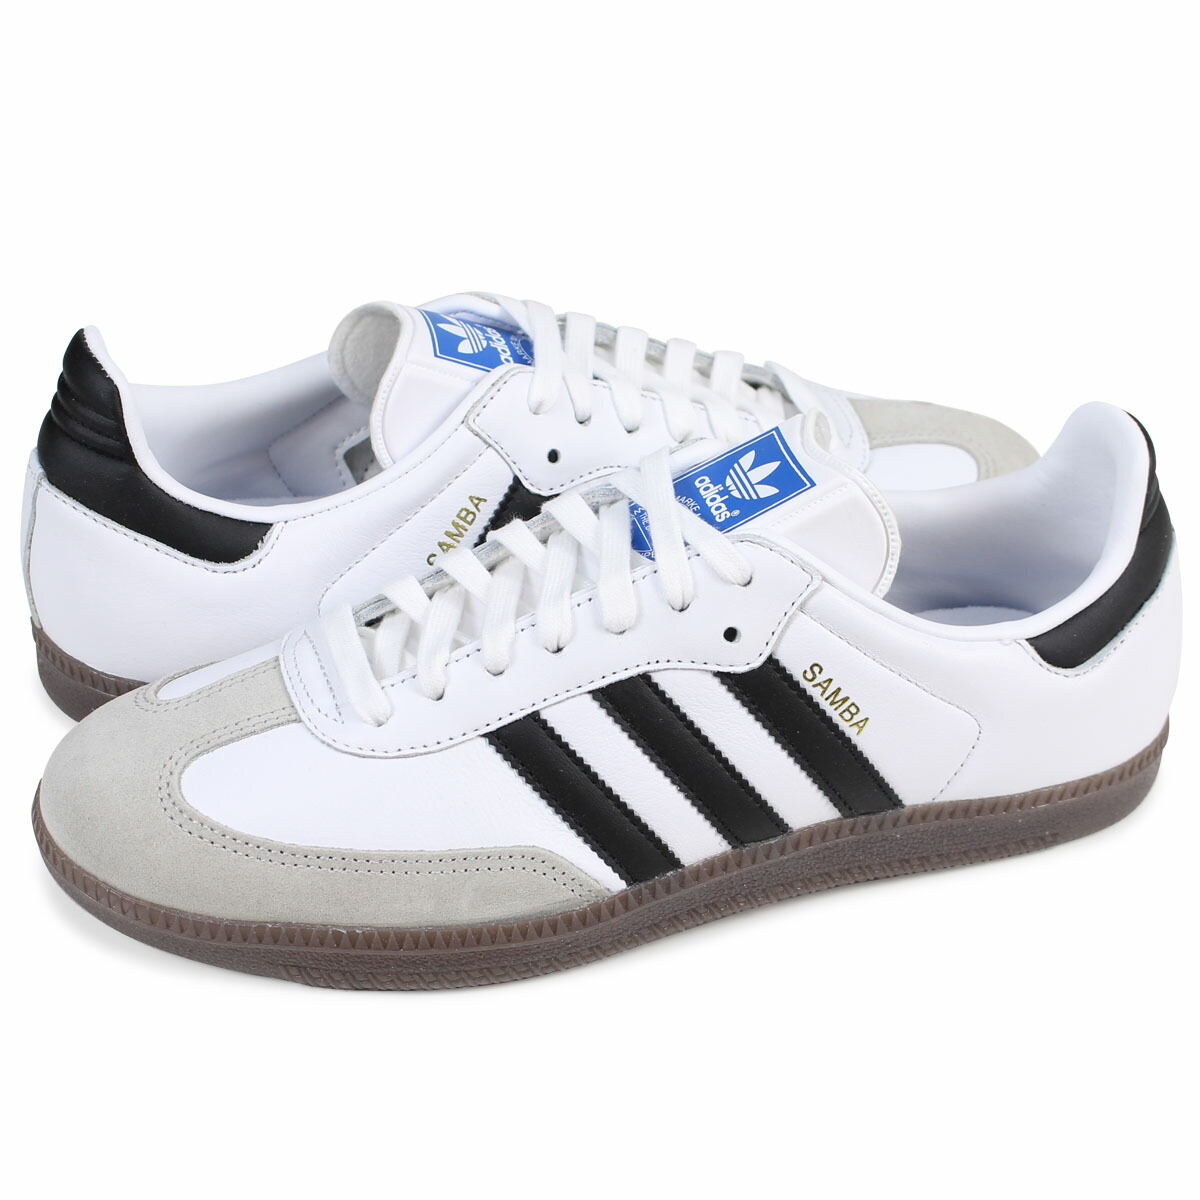 sneakers for cheap f33b8 c88d5 Product Information